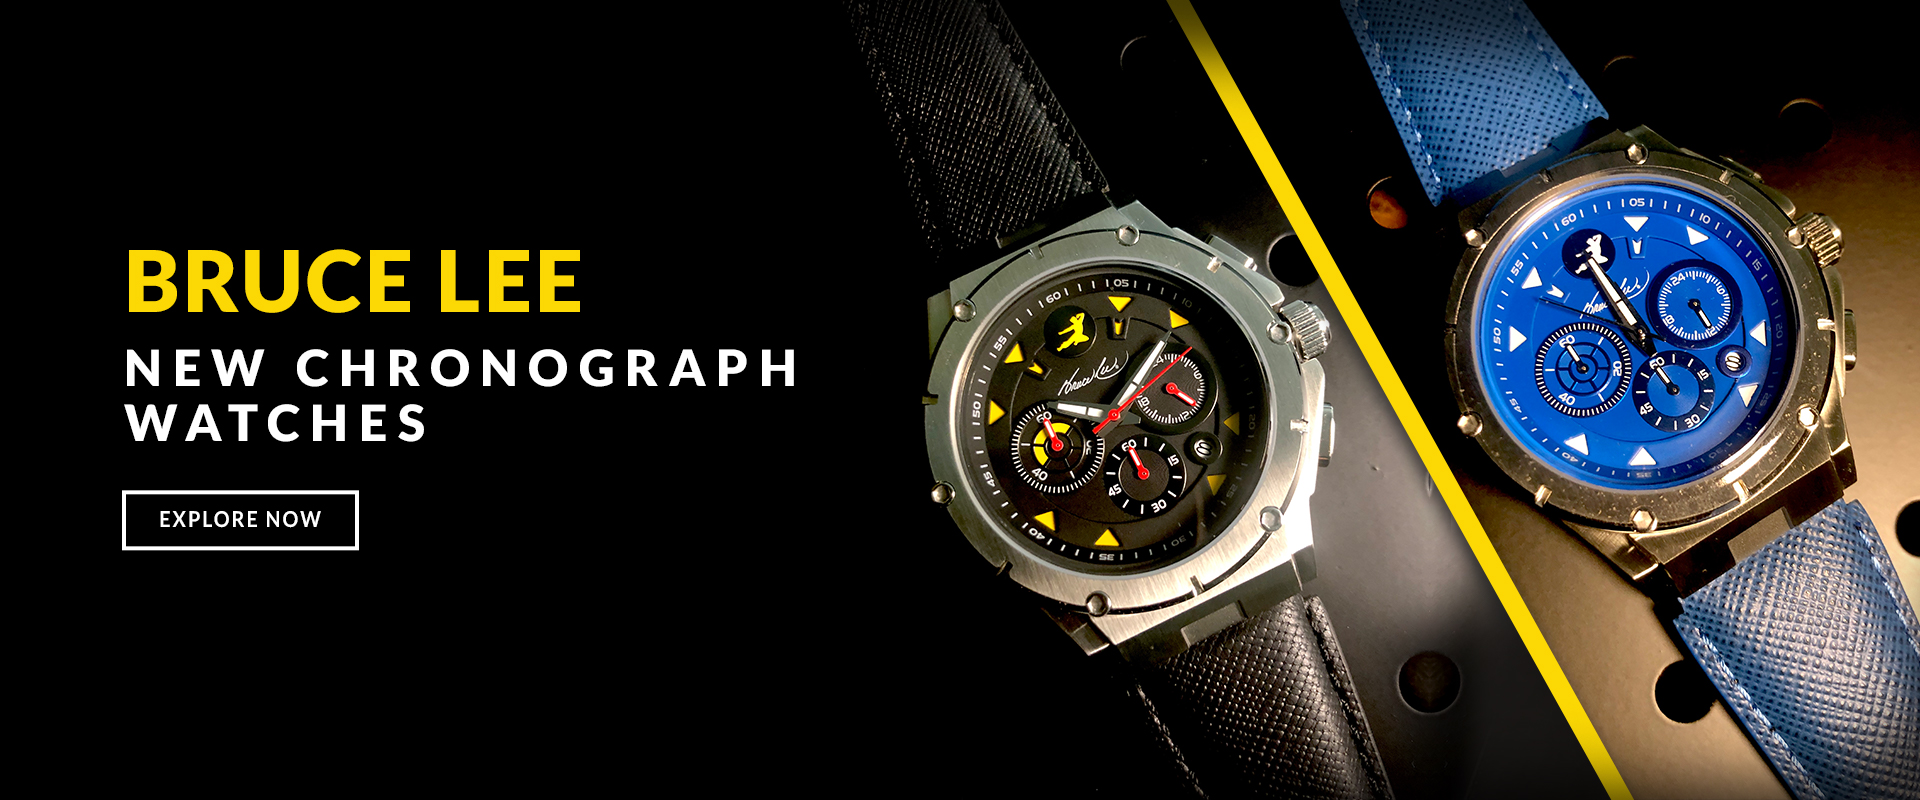 Bruce Lee Chronograph Watches